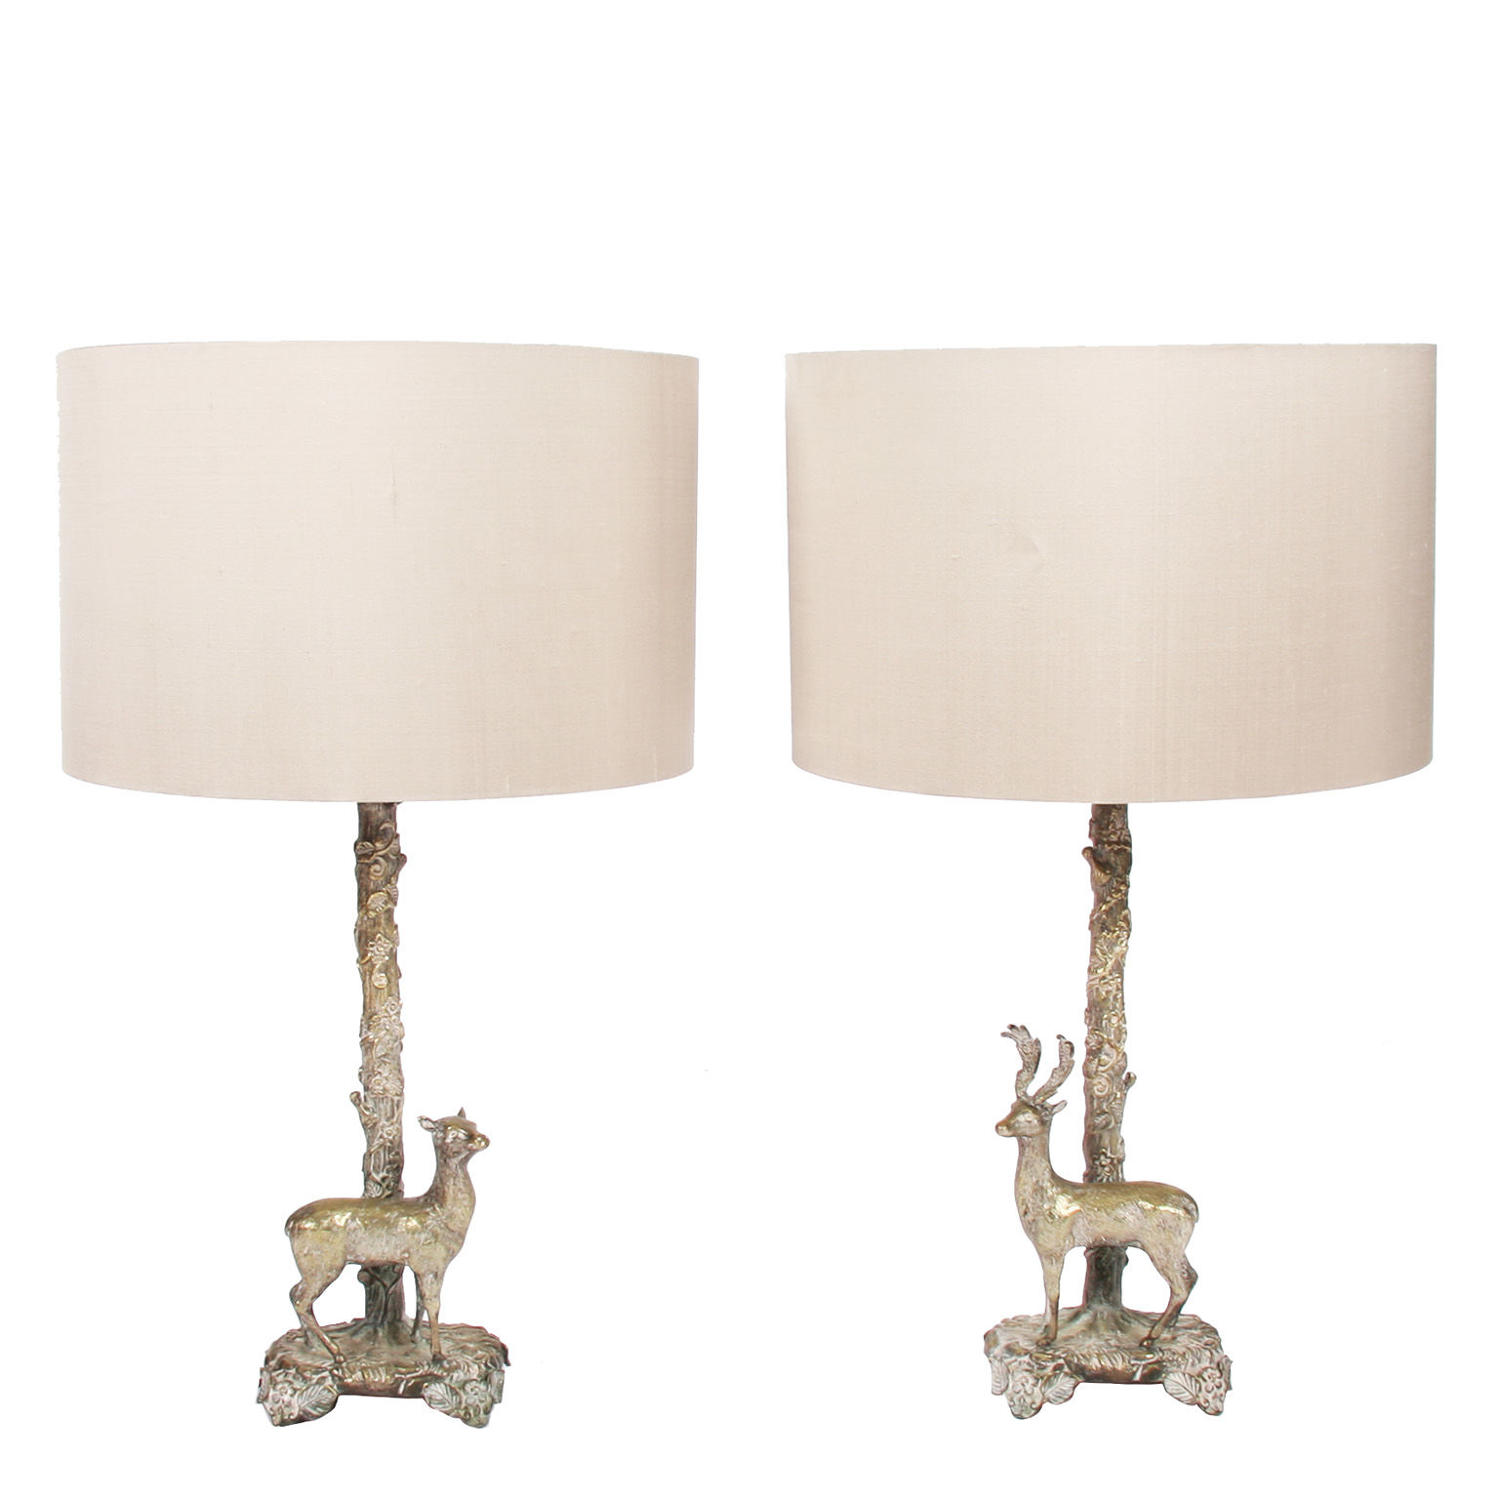 Pair of Silver Plated Deer Table Lamps by Valenti